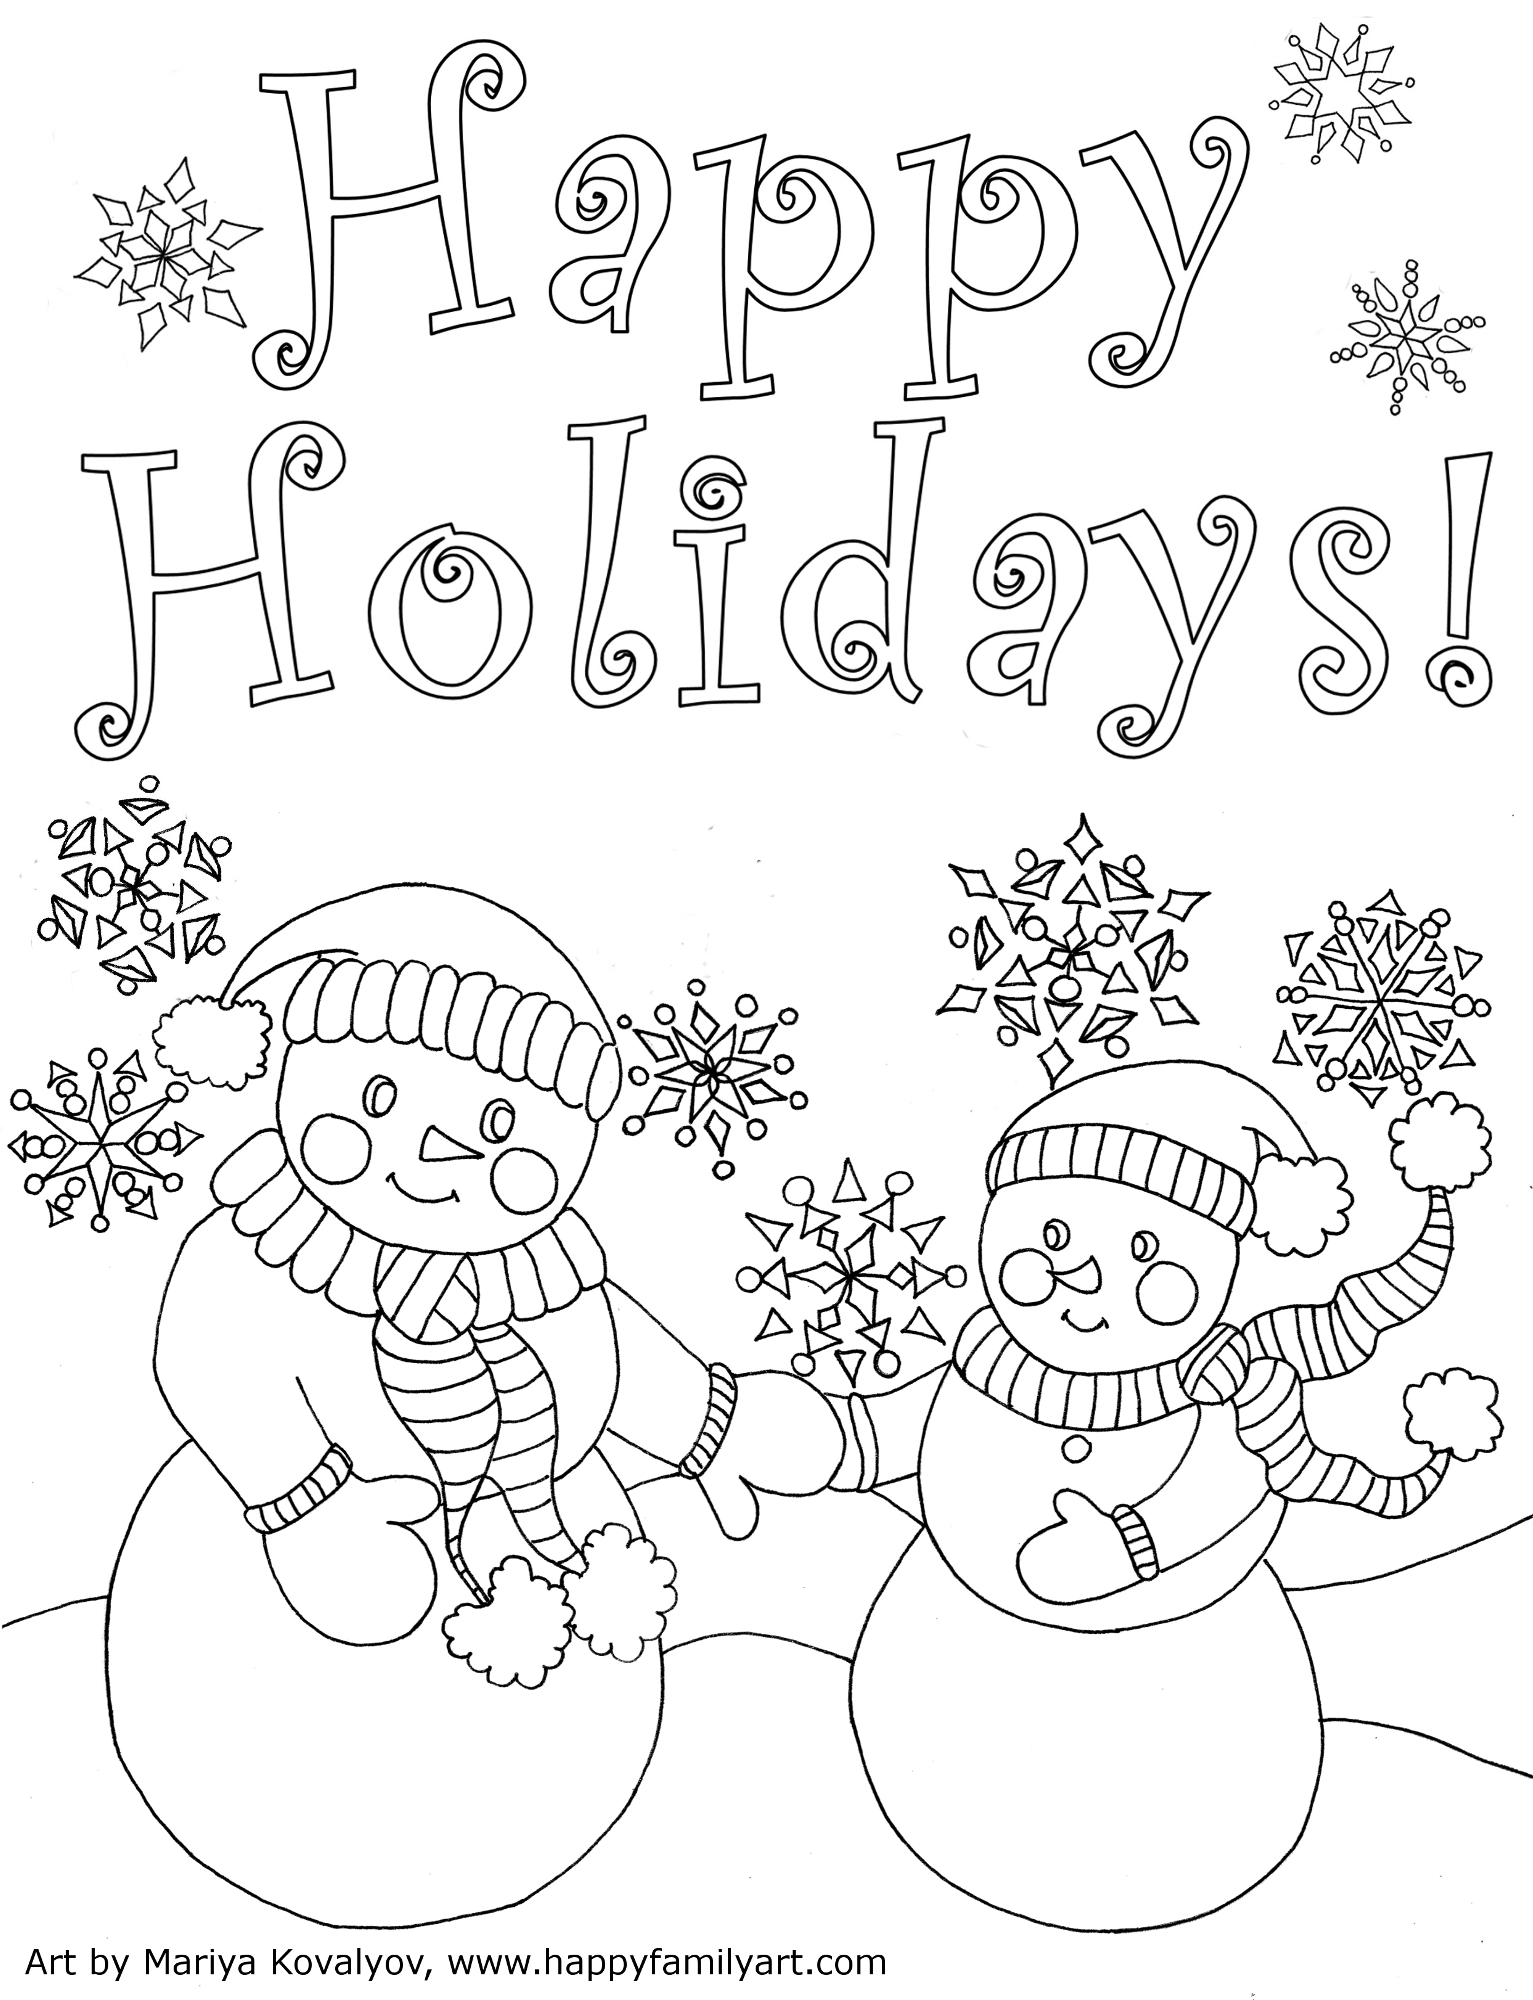 winter holiday coloring pages free - happy family art original and fun coloring pages